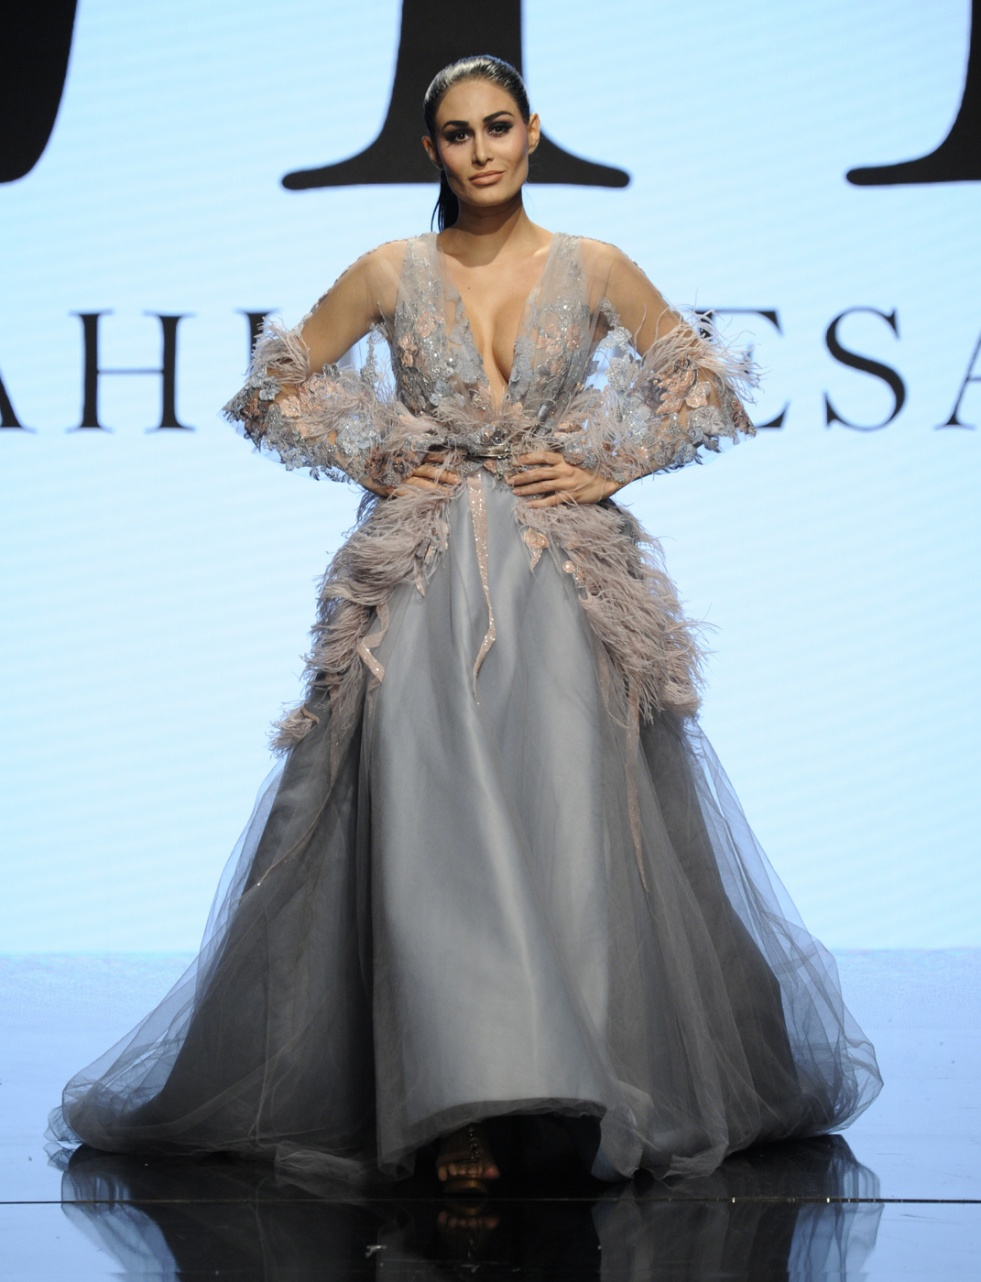 LOS ANGELES, CA - OCTOBER 09: A model walks the runway wearing Rahil Hasan at Art Hearts Fashion Los Angeles Fashion Week presented by AIDS Healthcare Foundation on October 9, 2016 in Los Angeles, California. (Photo by Arun Nevader/Getty Images for Art Hearts Fashion)